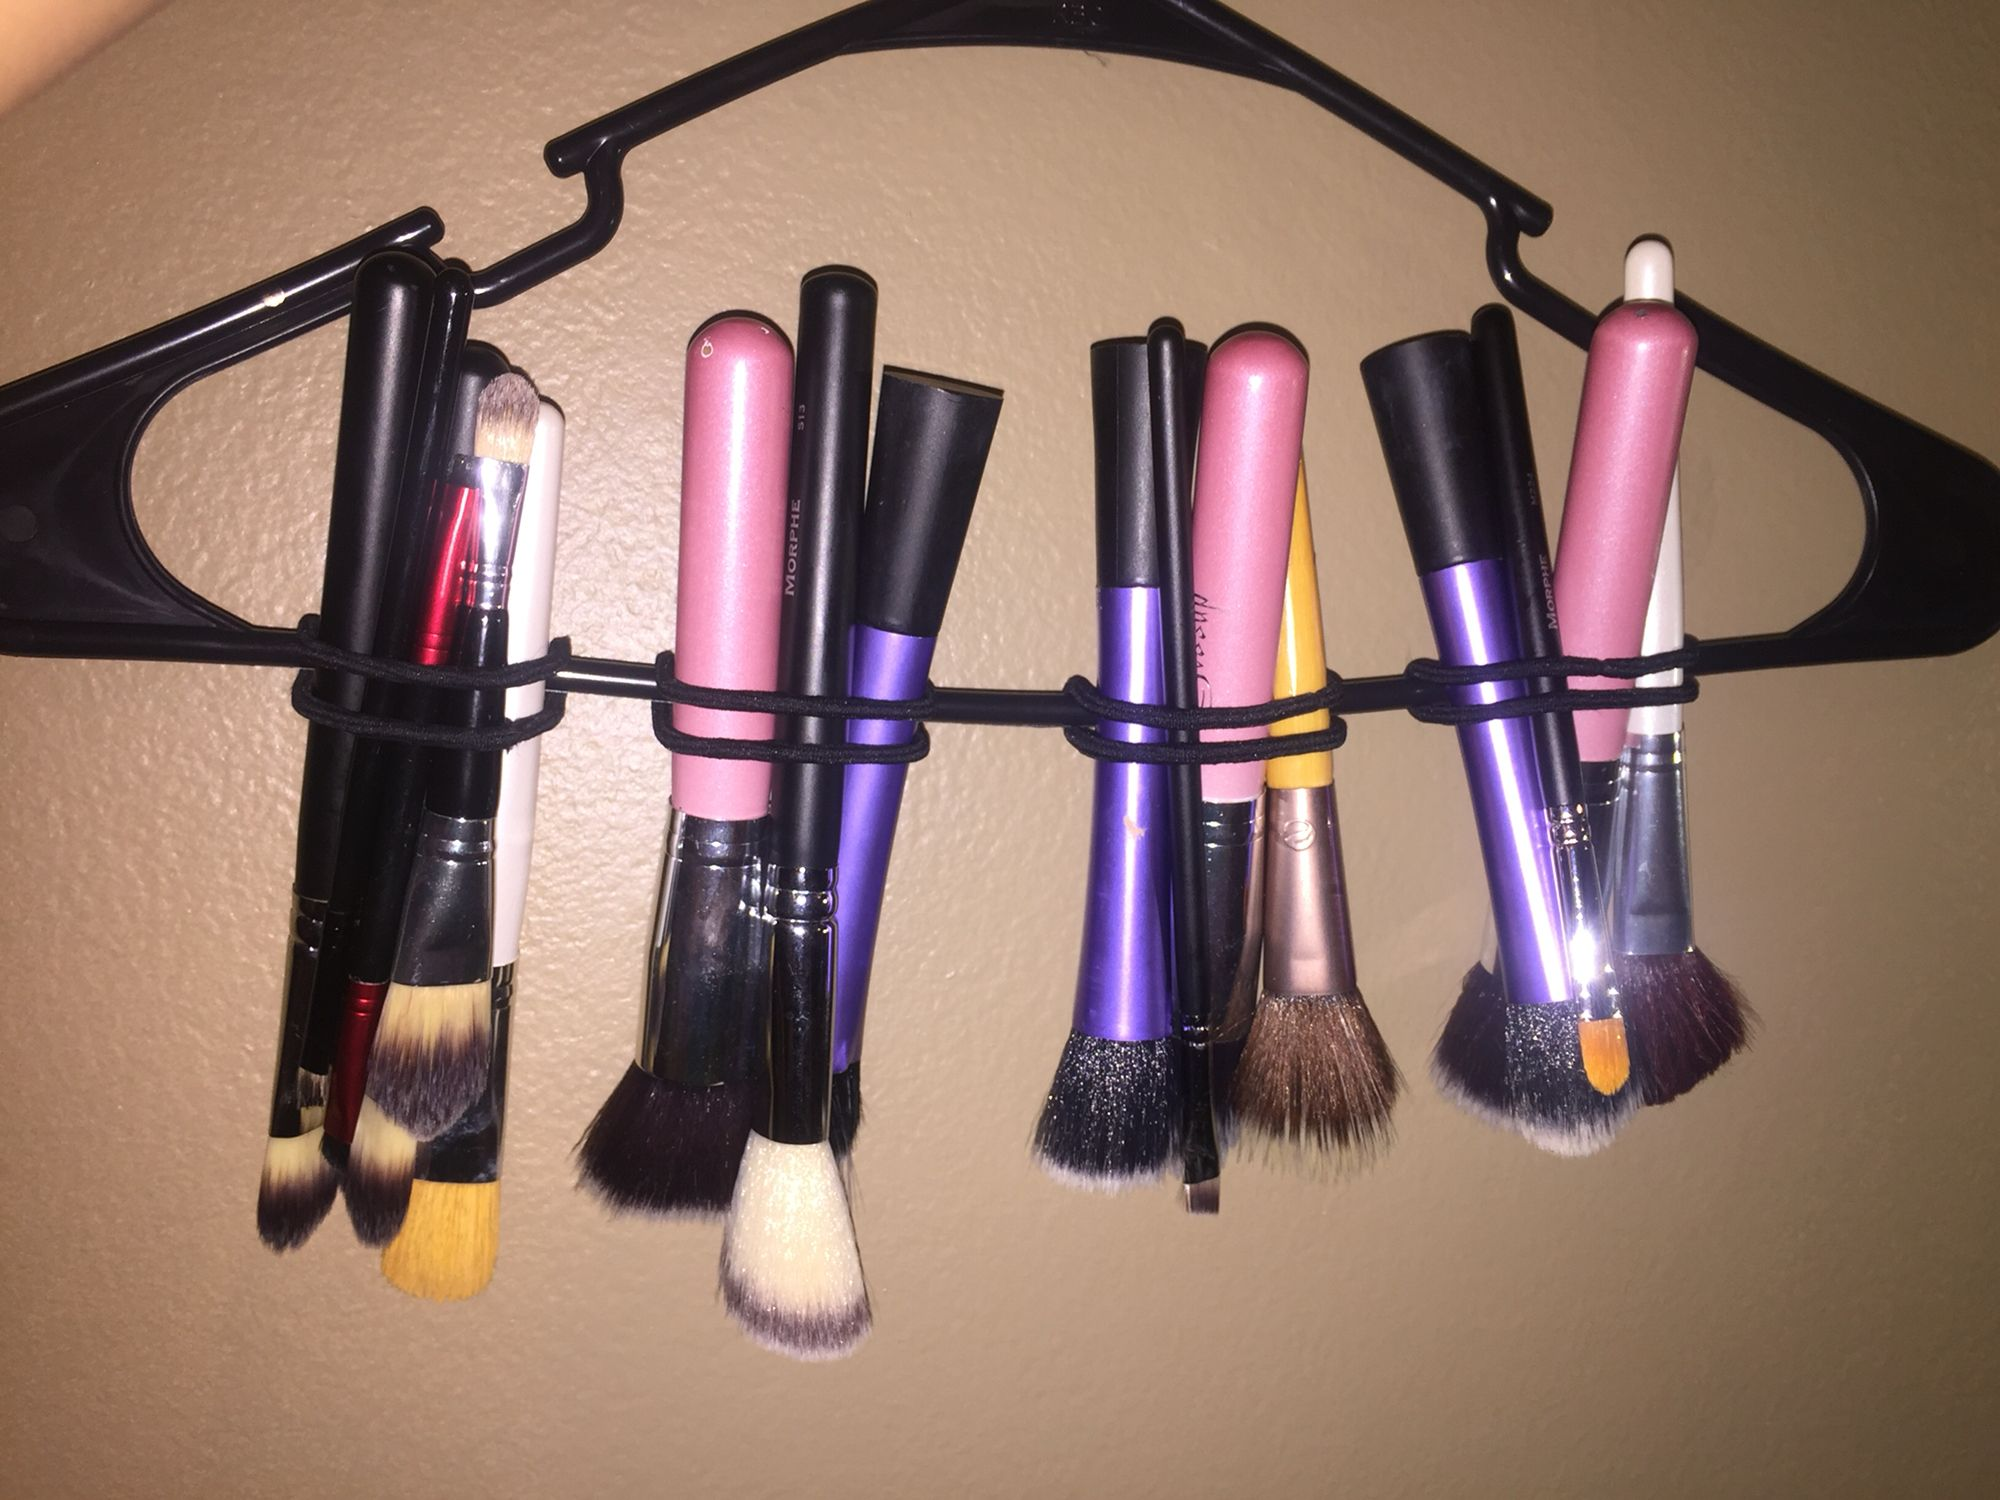 A easy DIY to dry your makeup brushes after being cleaned